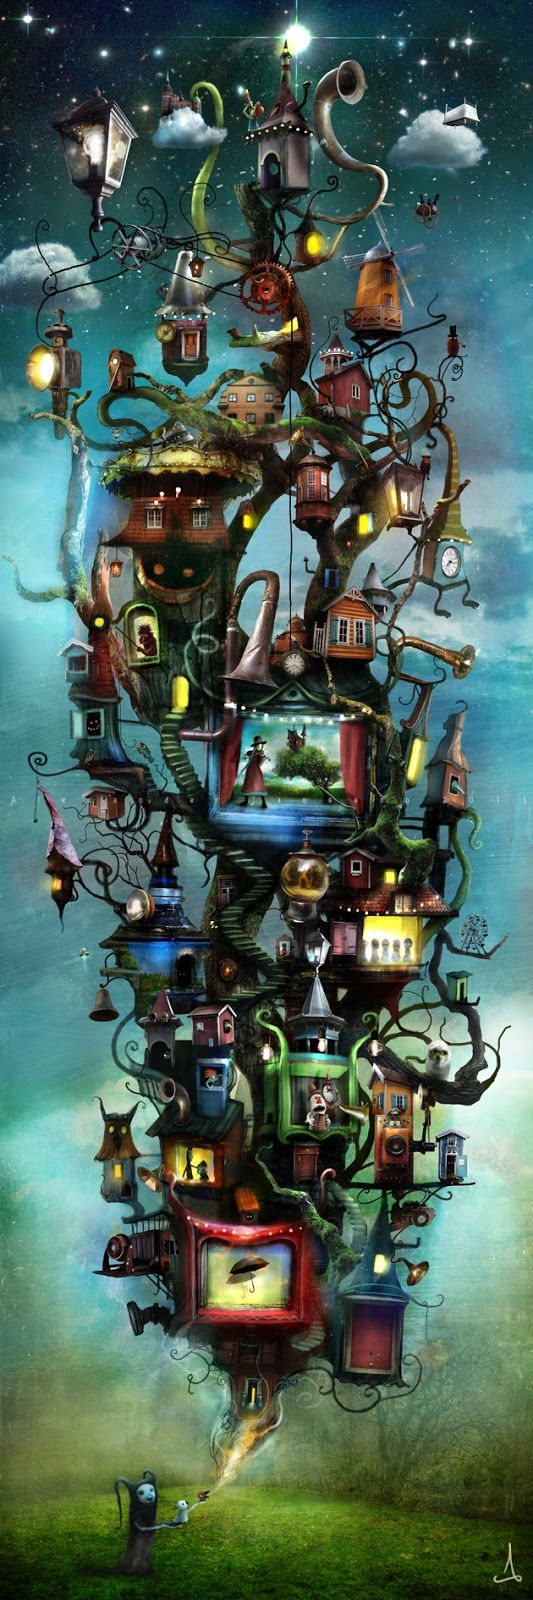 alexander jansson: Illustrations